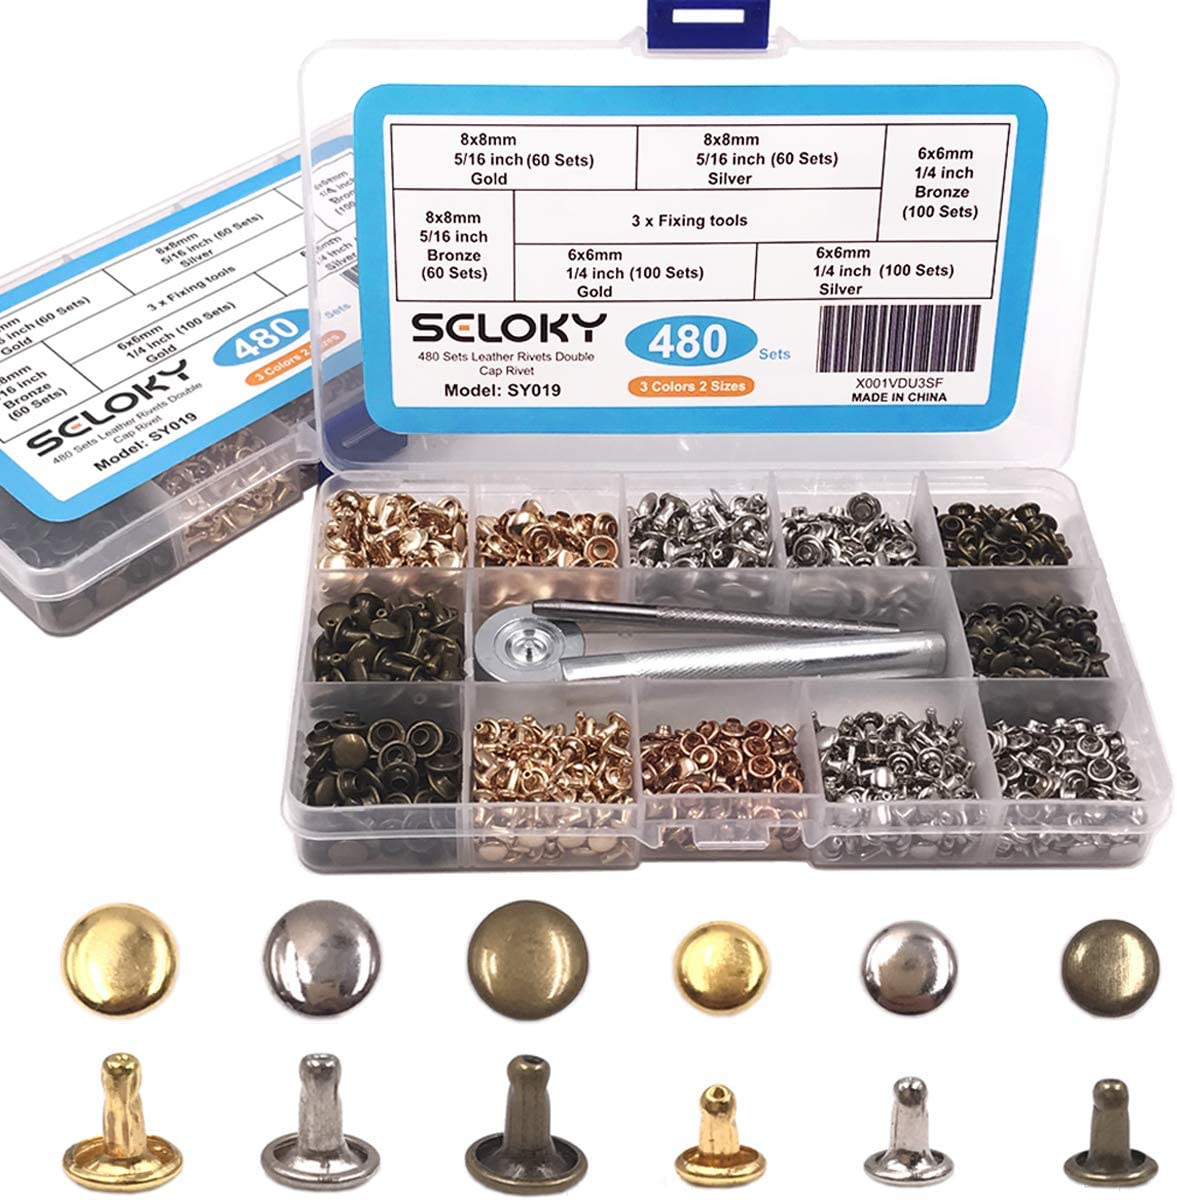 Seloky 480 Sets Leather Rivets Double Cap Rivet Tubular 3 Colors 2 Sizes Metal Studs with Fixing Tools for DIY Craft//Clothes//Shoes//Bags//Belts Repair and Decoration